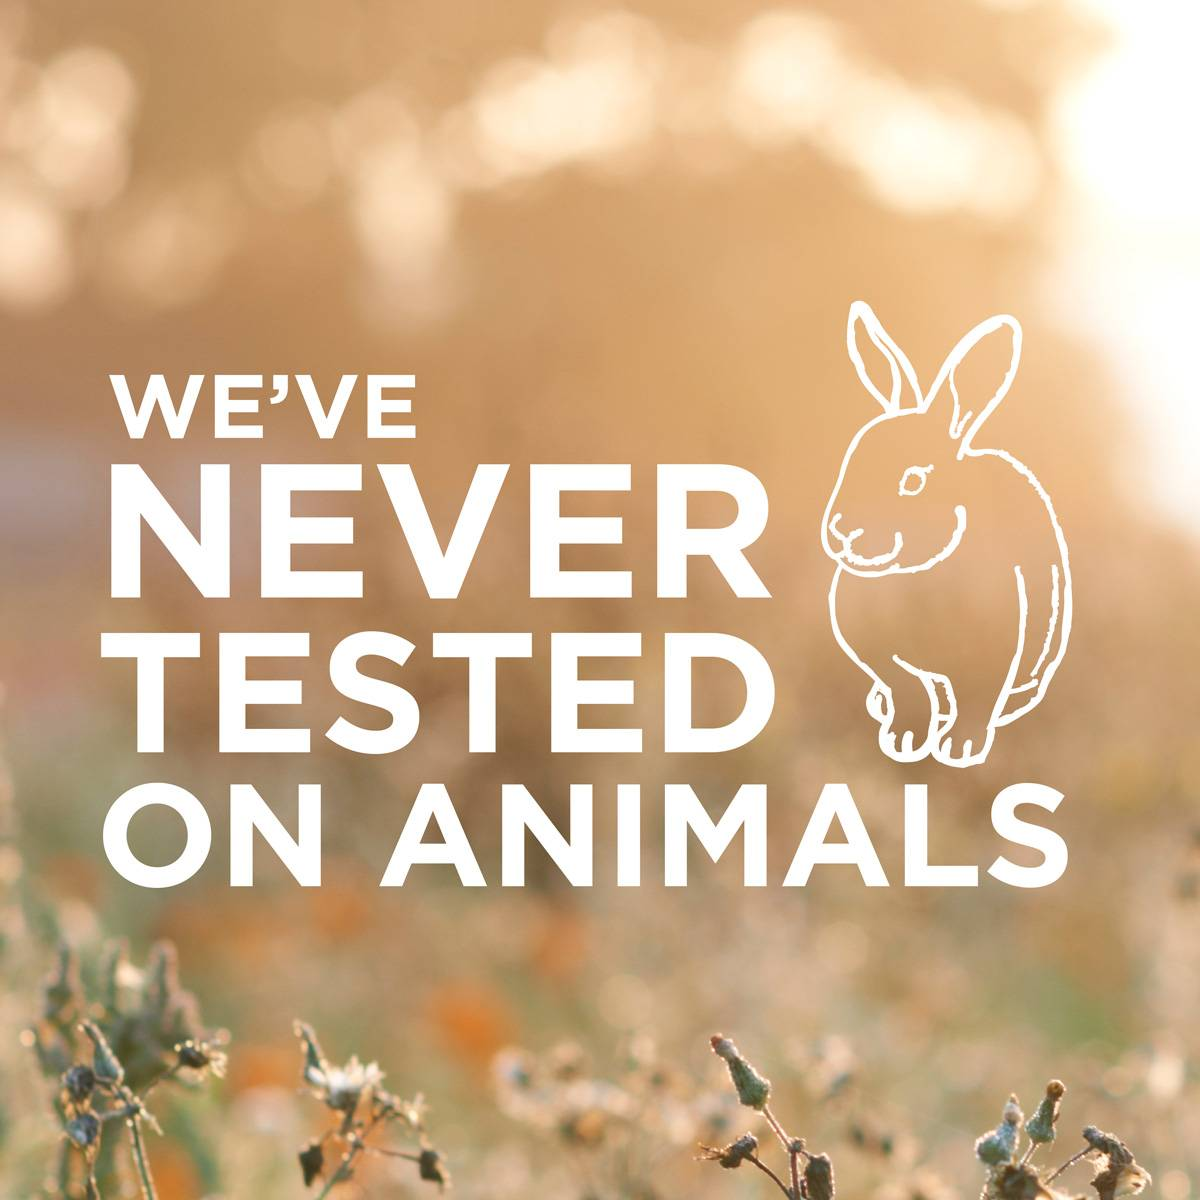 We have never tested on animals